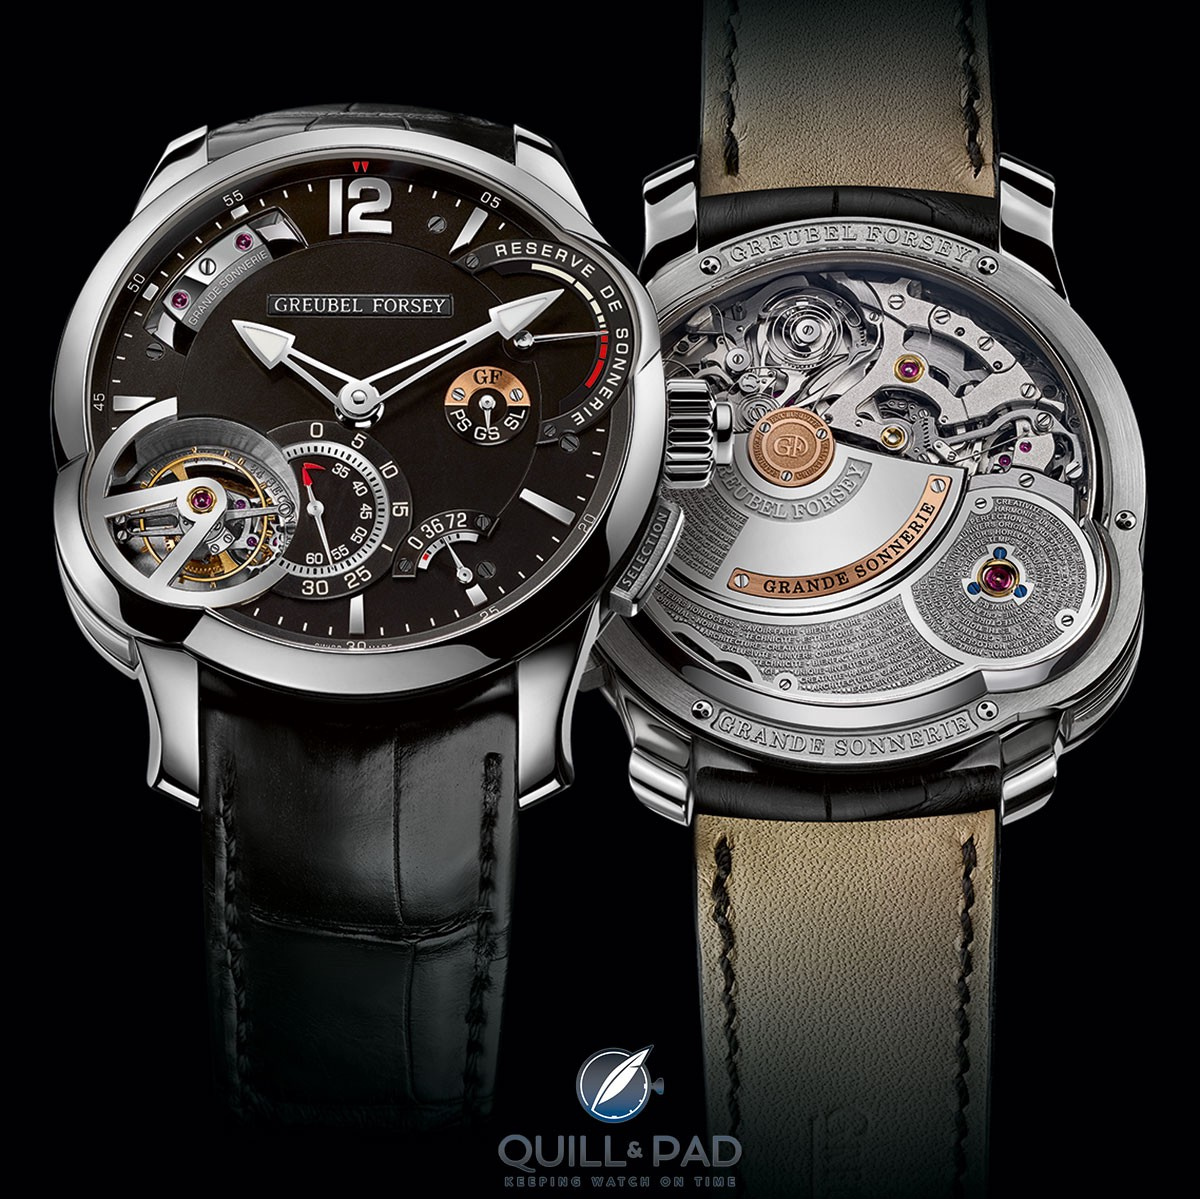 Greubel Forsey Grande Sonnerie front and back